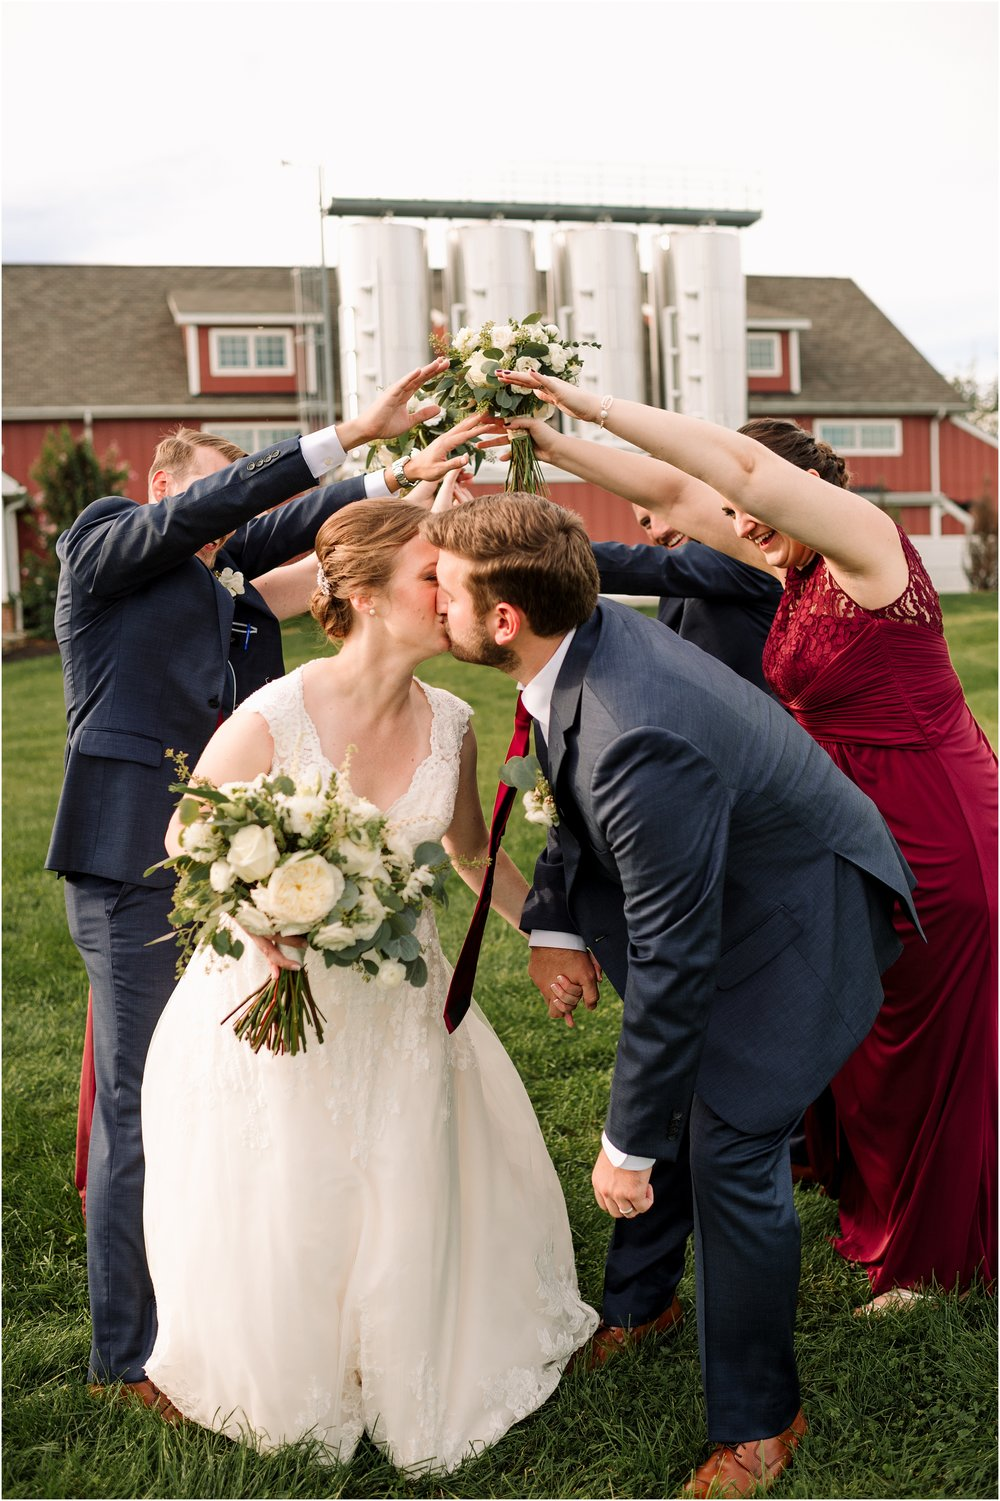 hannah leigh photography Wyndridge Farm Wedding York PA_1547.jpg